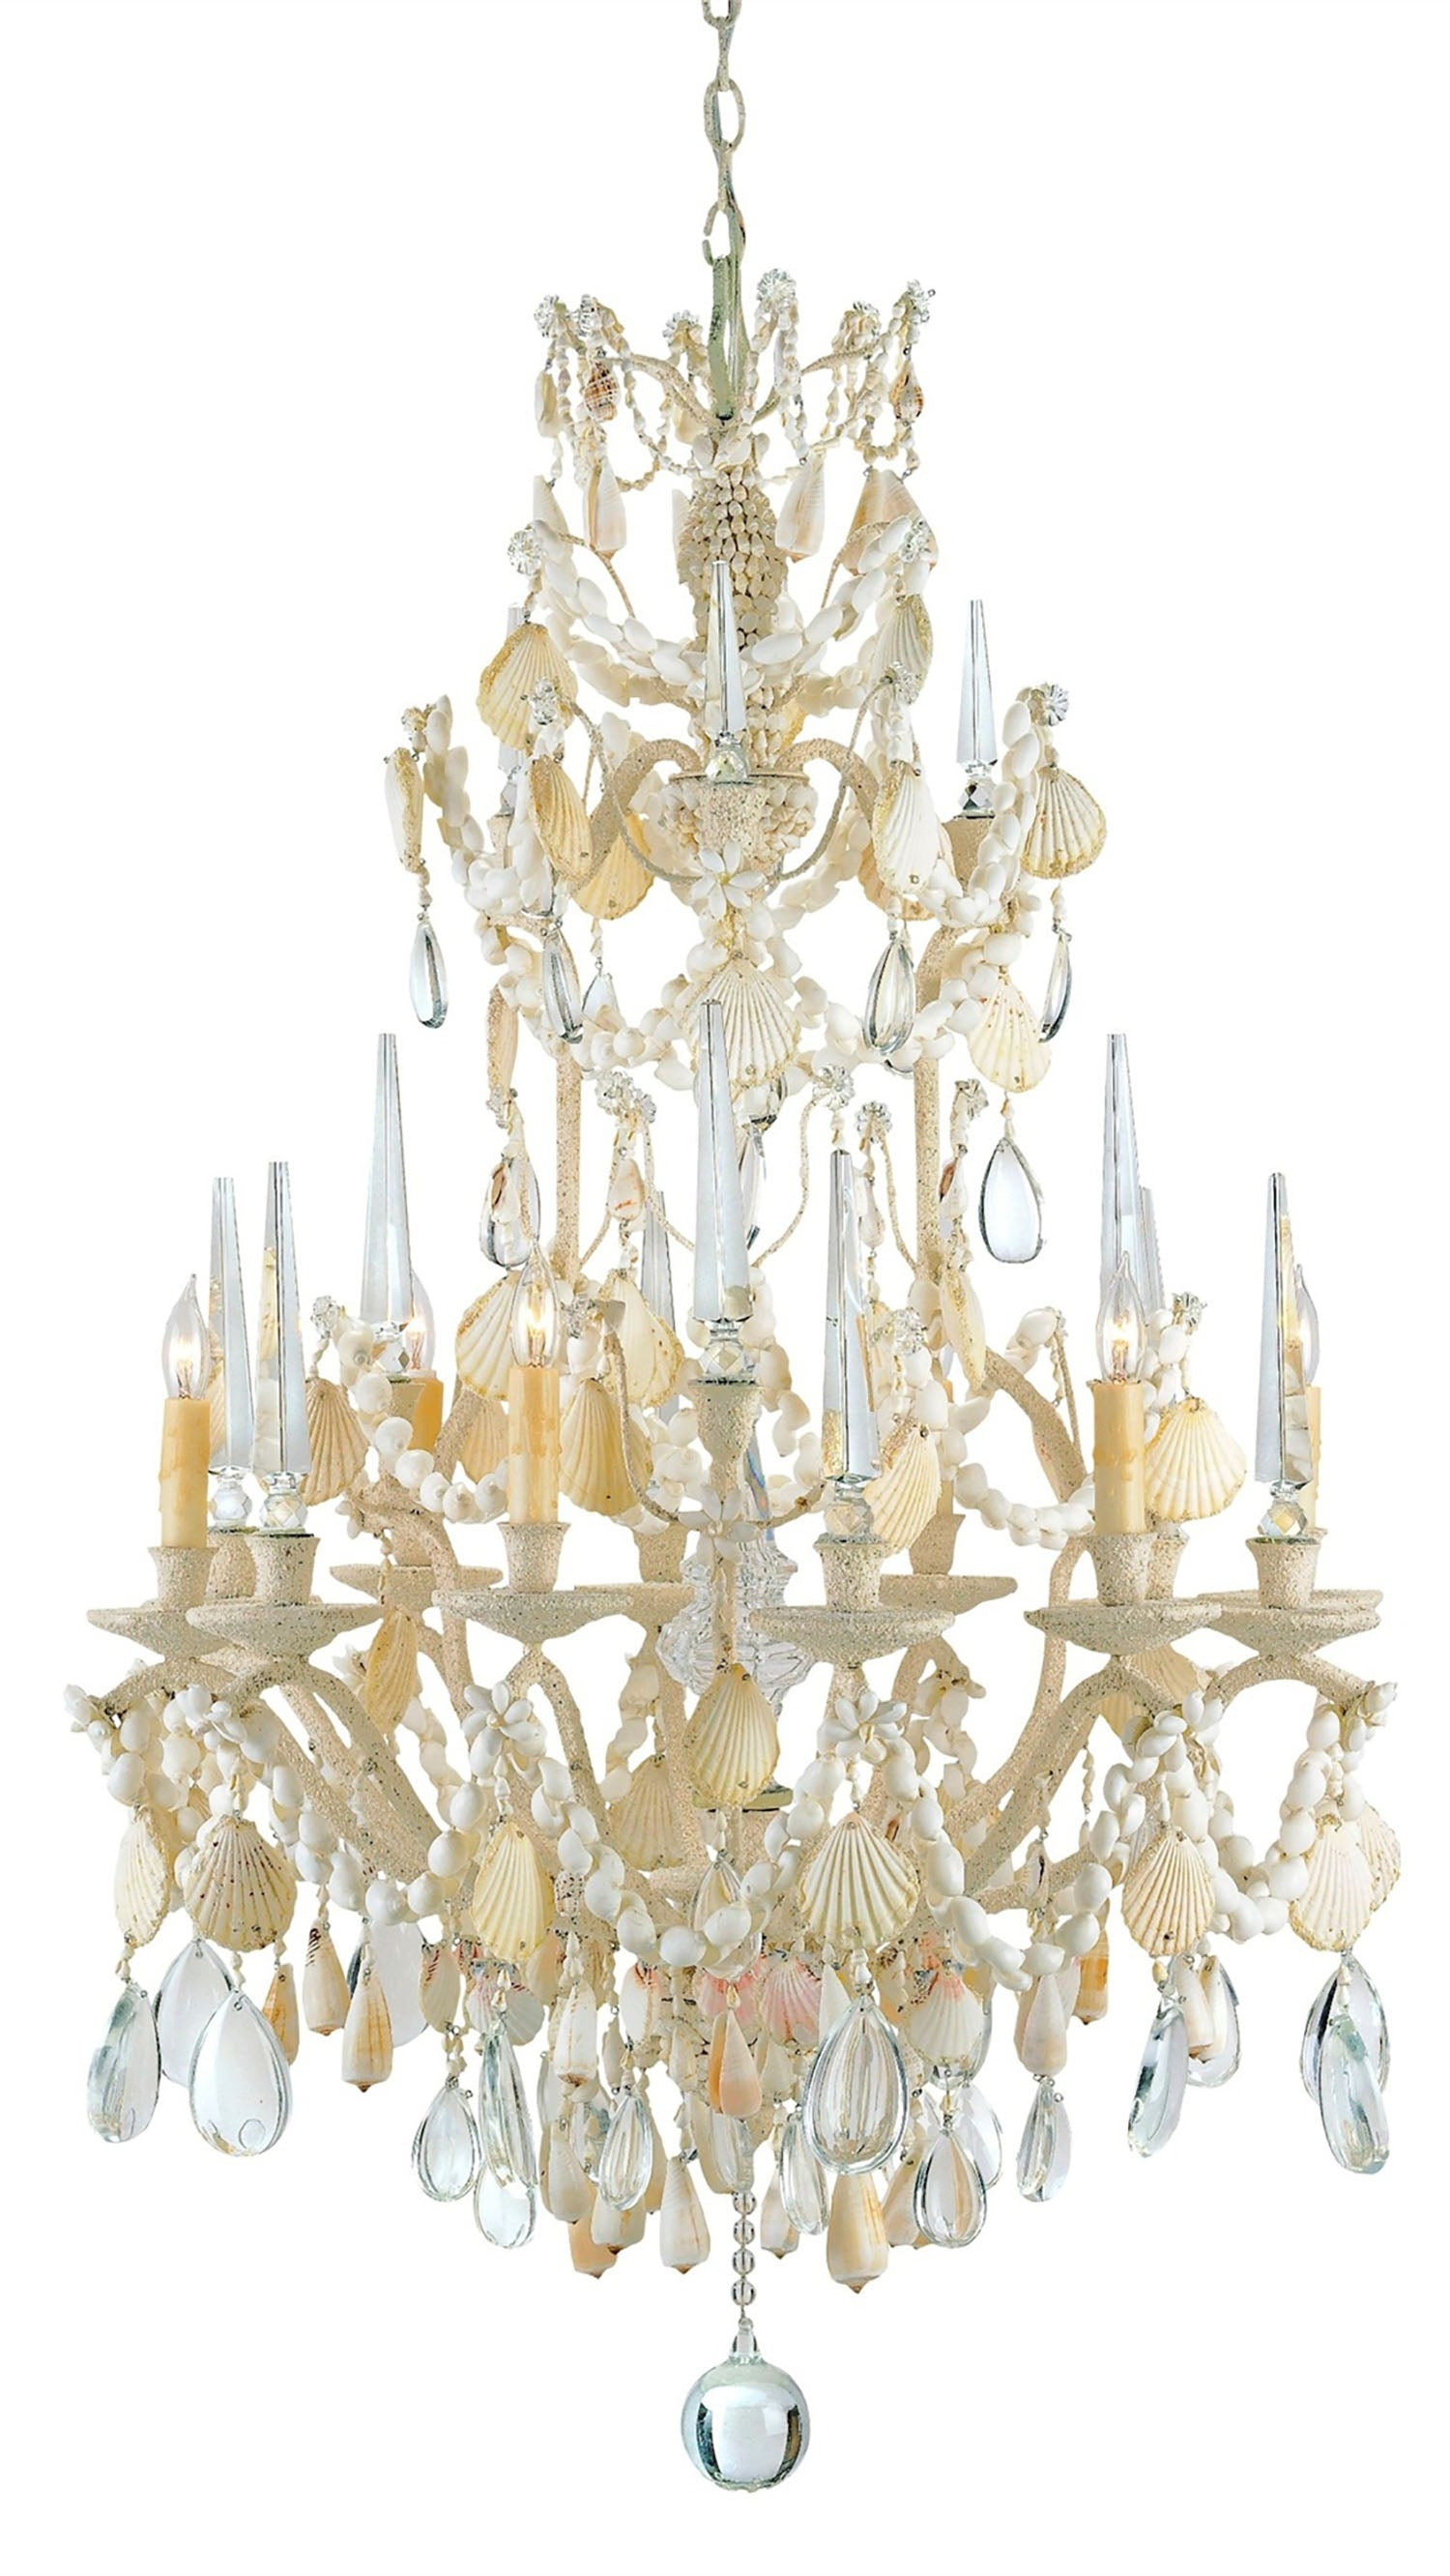 Currey and Company Buttermere Chandelier 9162 - LOVECUP